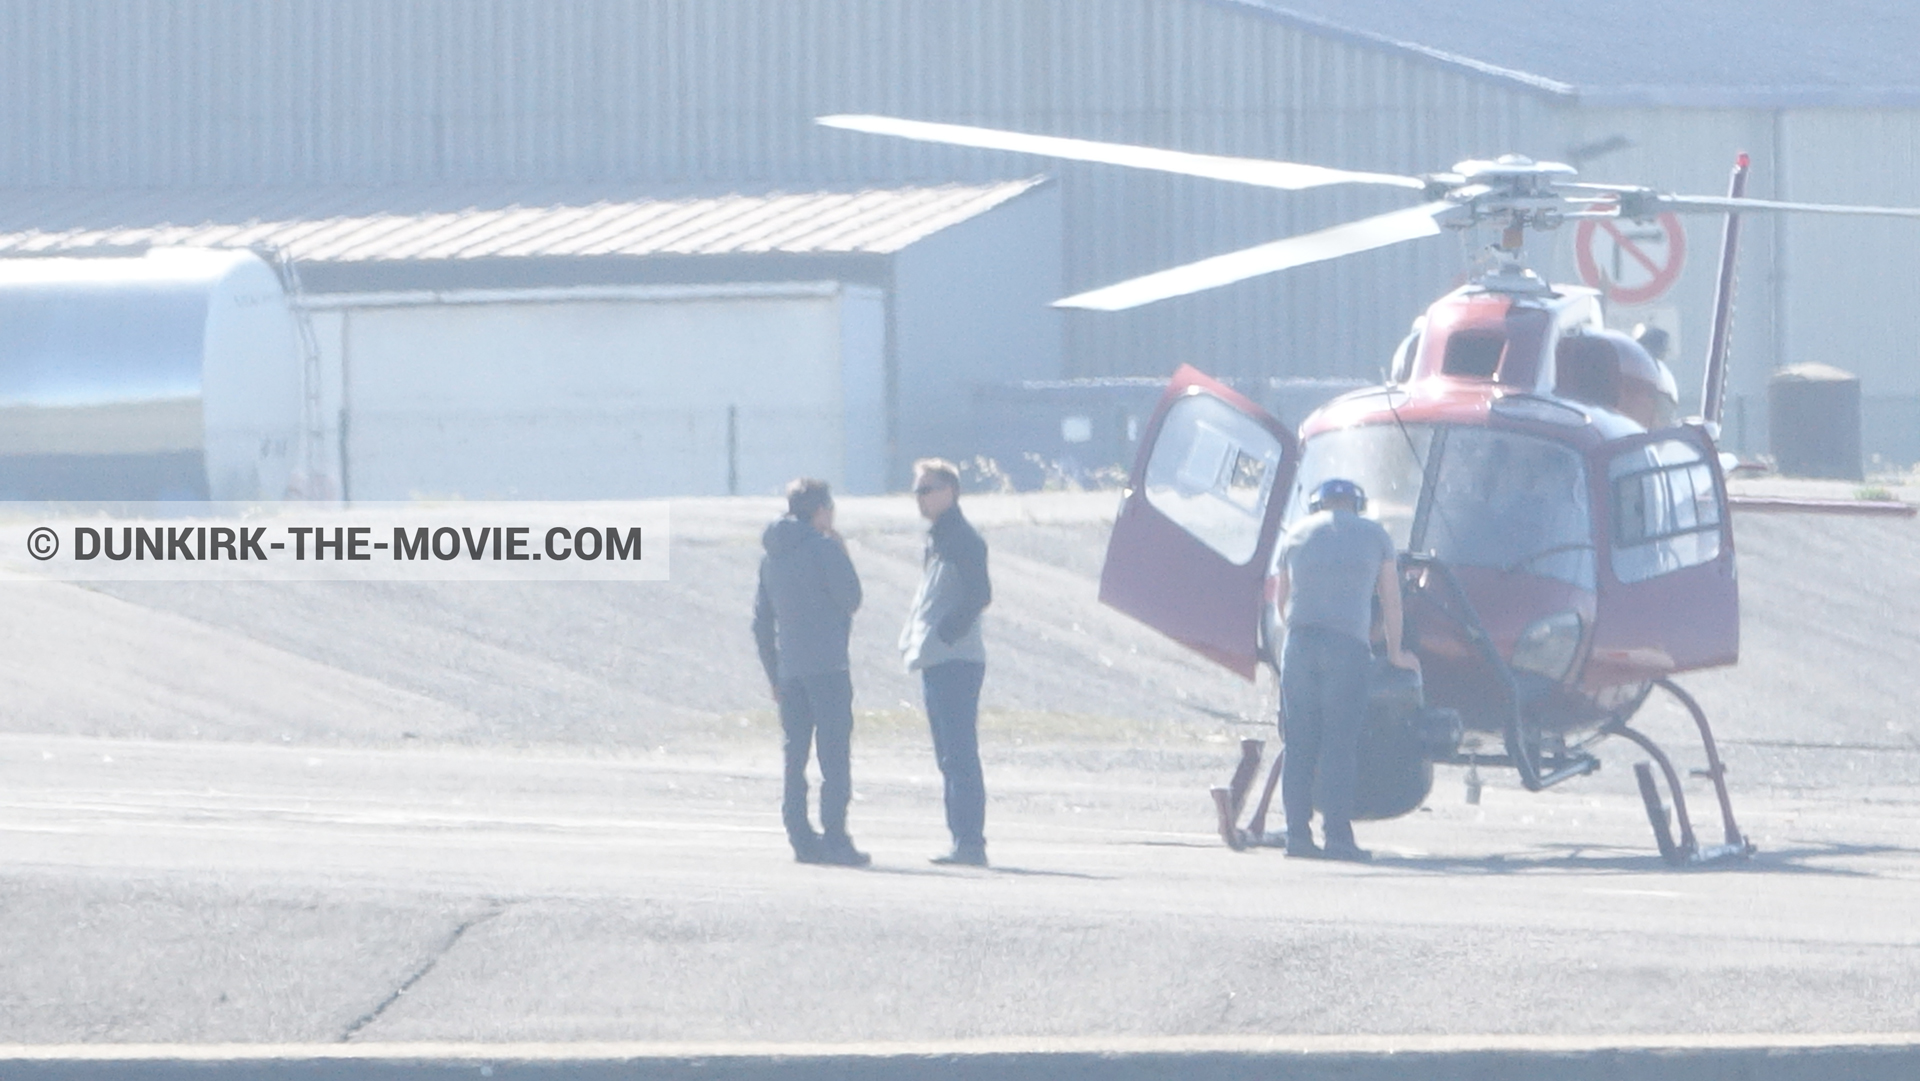 Picture with helicopter camera, technical team,  from behind the scene of the Dunkirk movie by Nolan